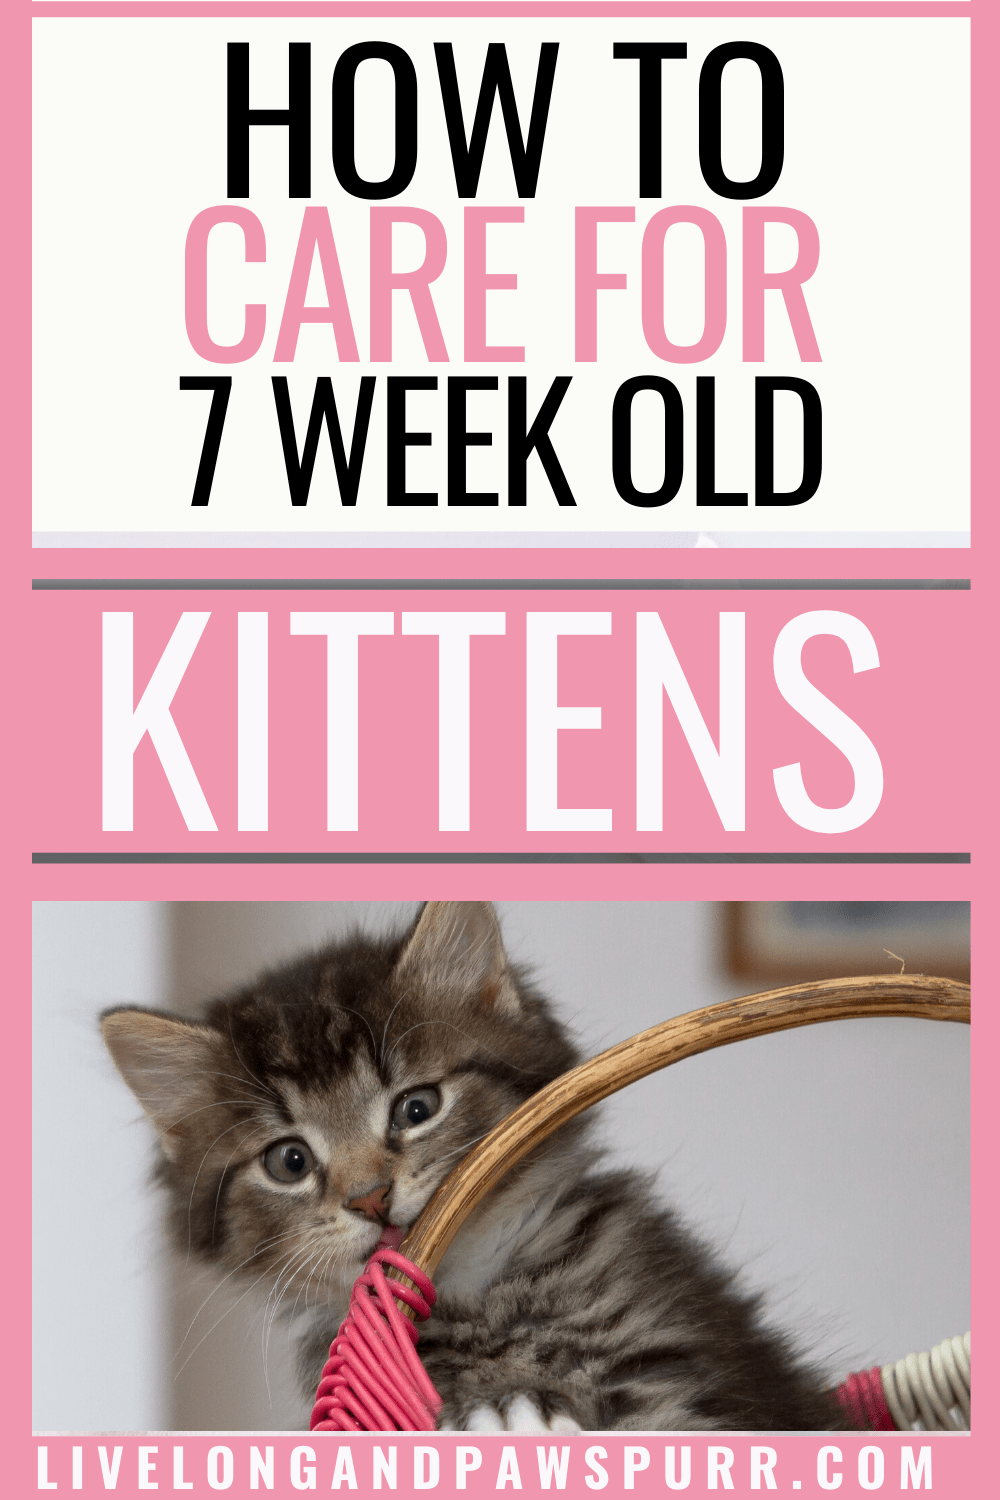 The Simple Guide To 7 Week Old Kittens Live Long And Pawspurr In 2020 Kittens Getting A Kitten Kitten Care